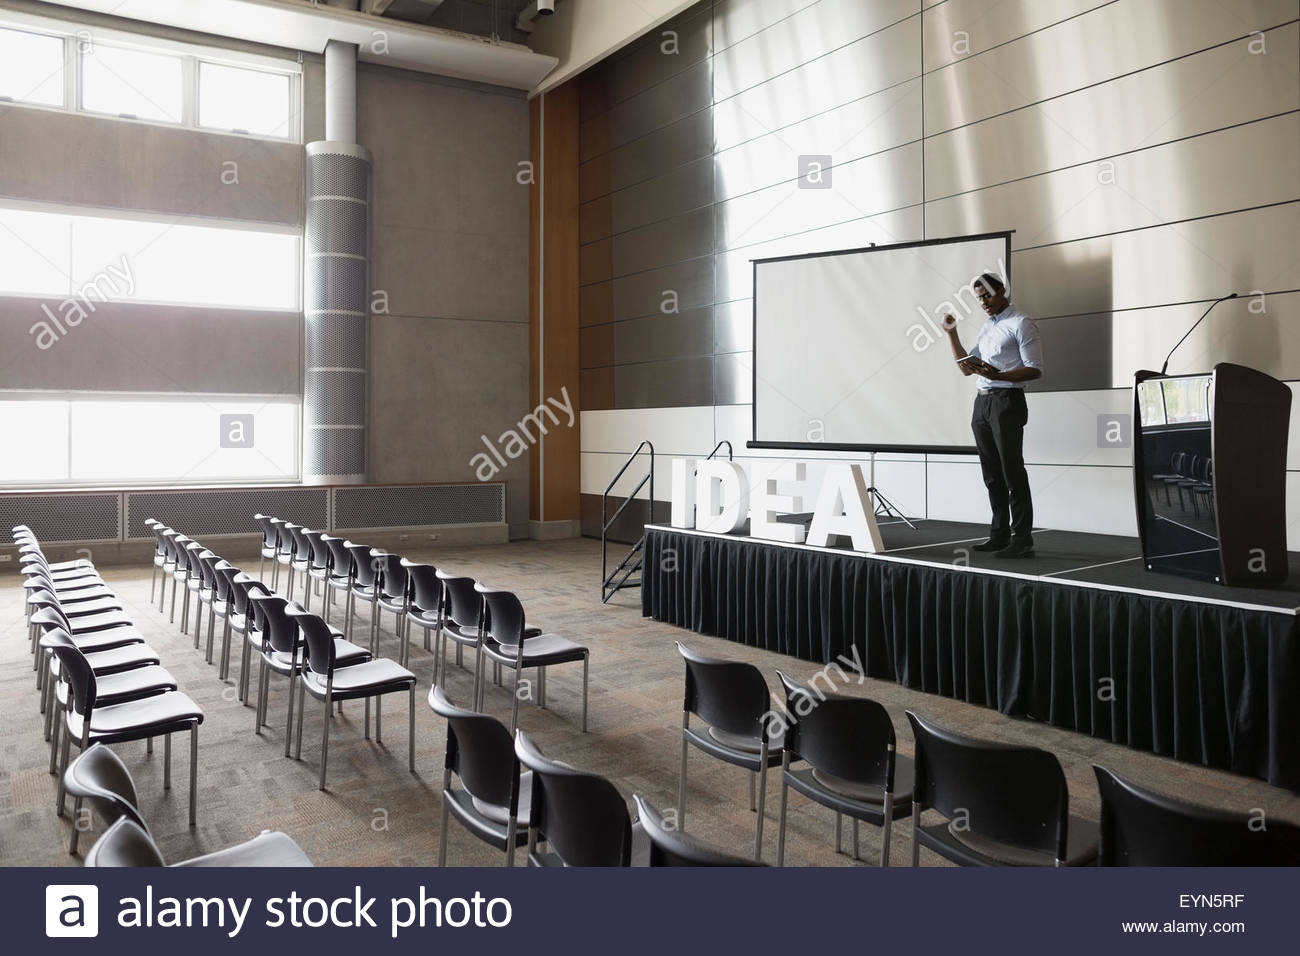 Man rehearsing on stage in empty auditorium - Stock Image